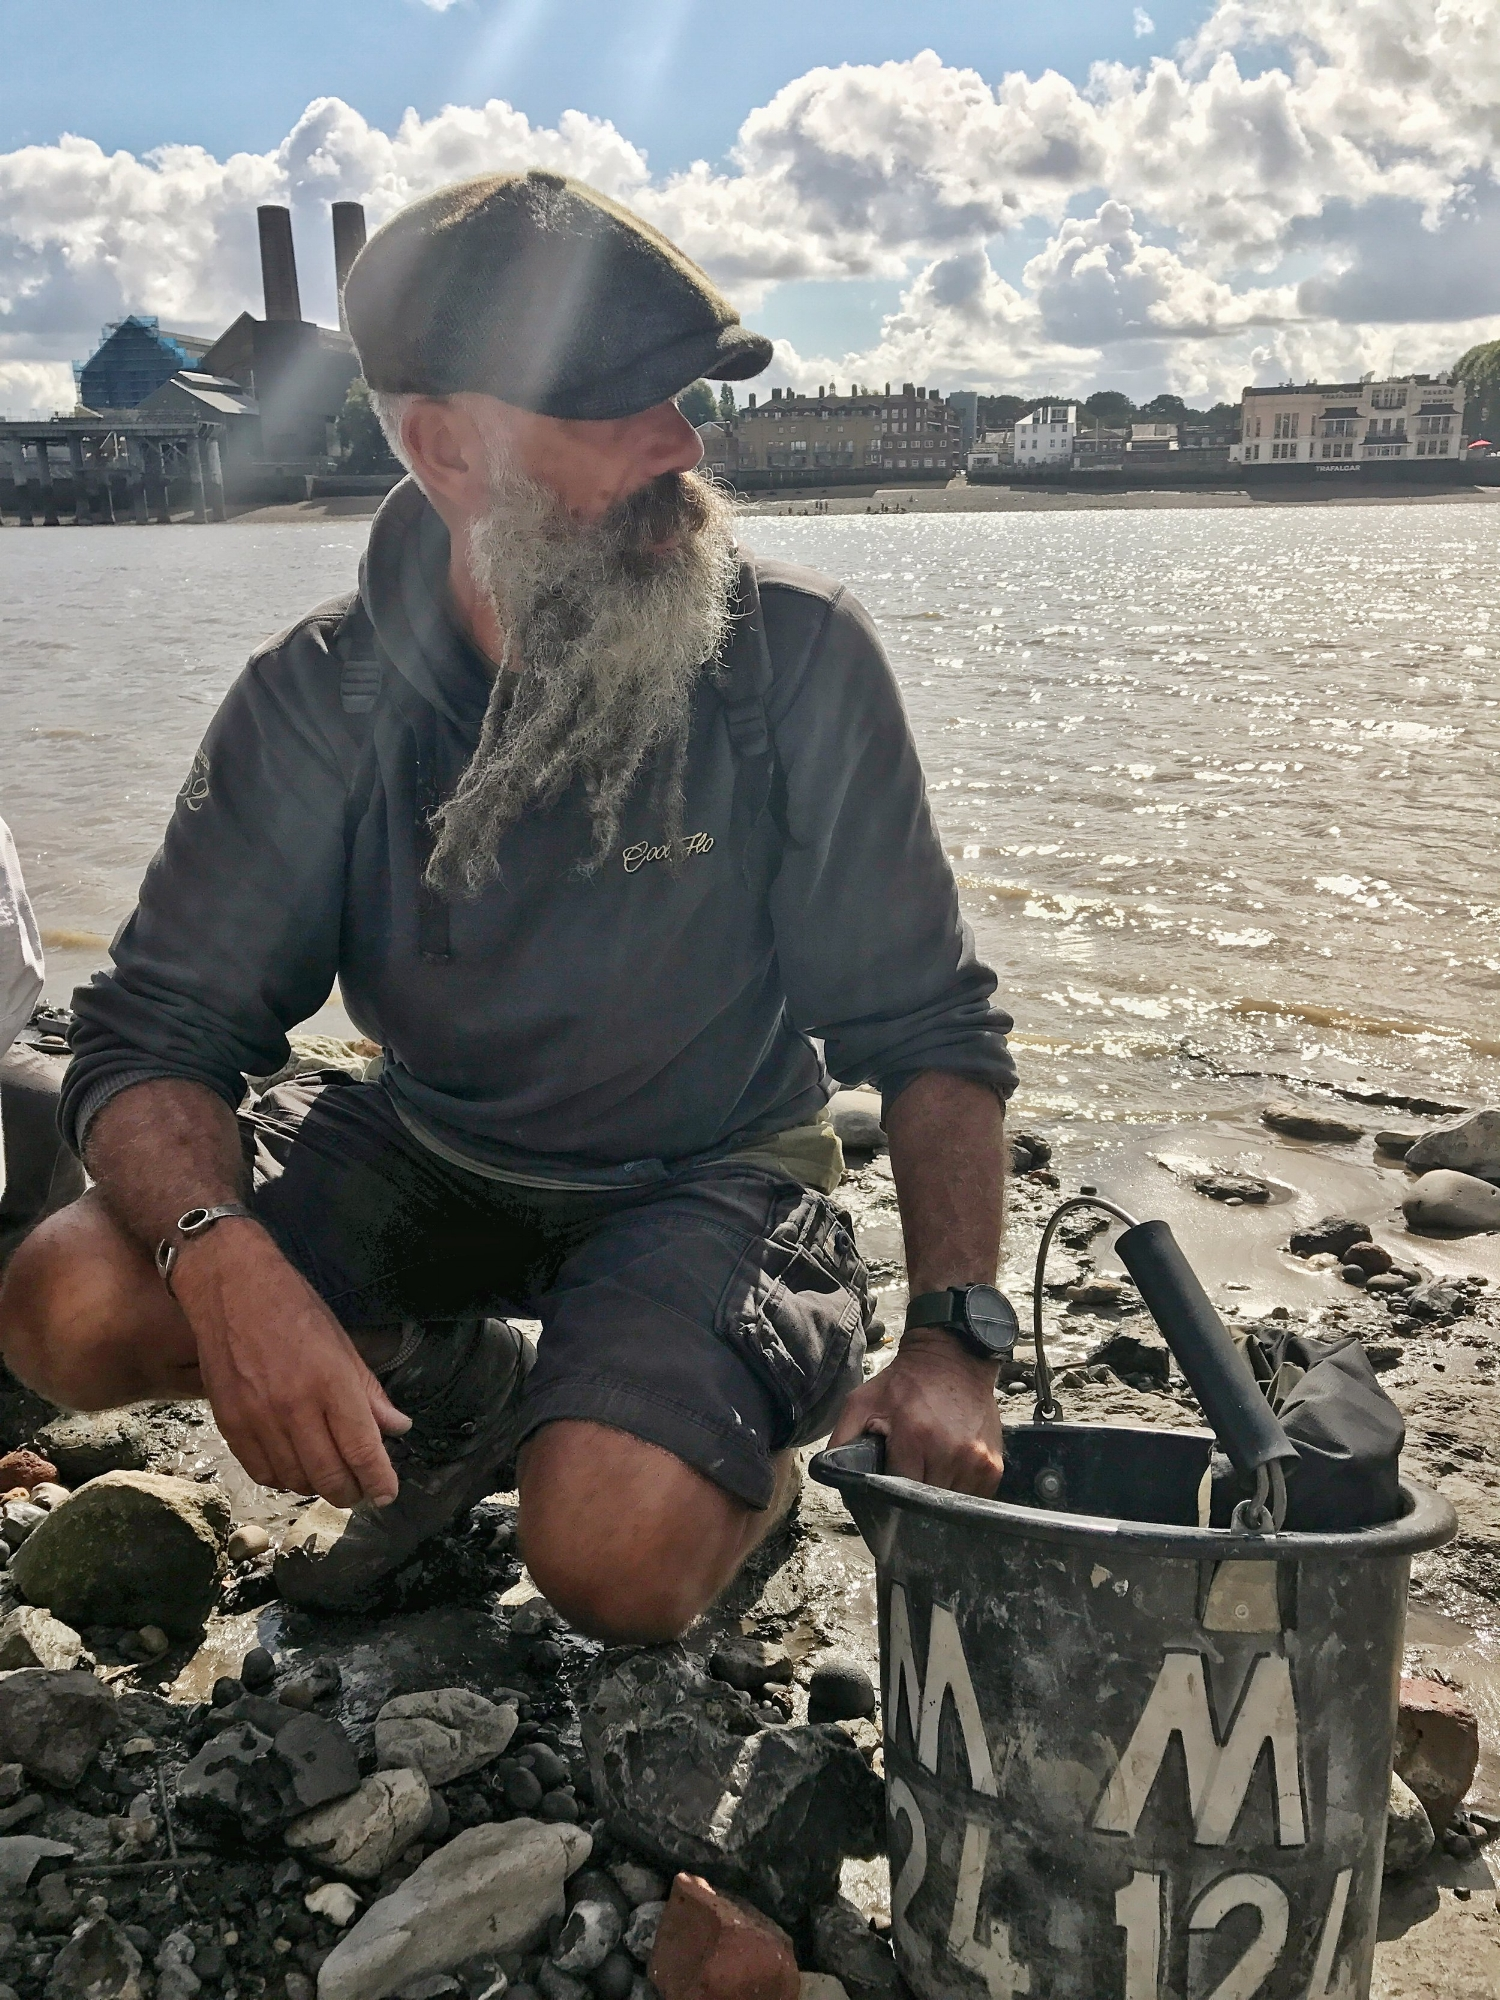 Mudman with Bucket on the foreshore of the Thames